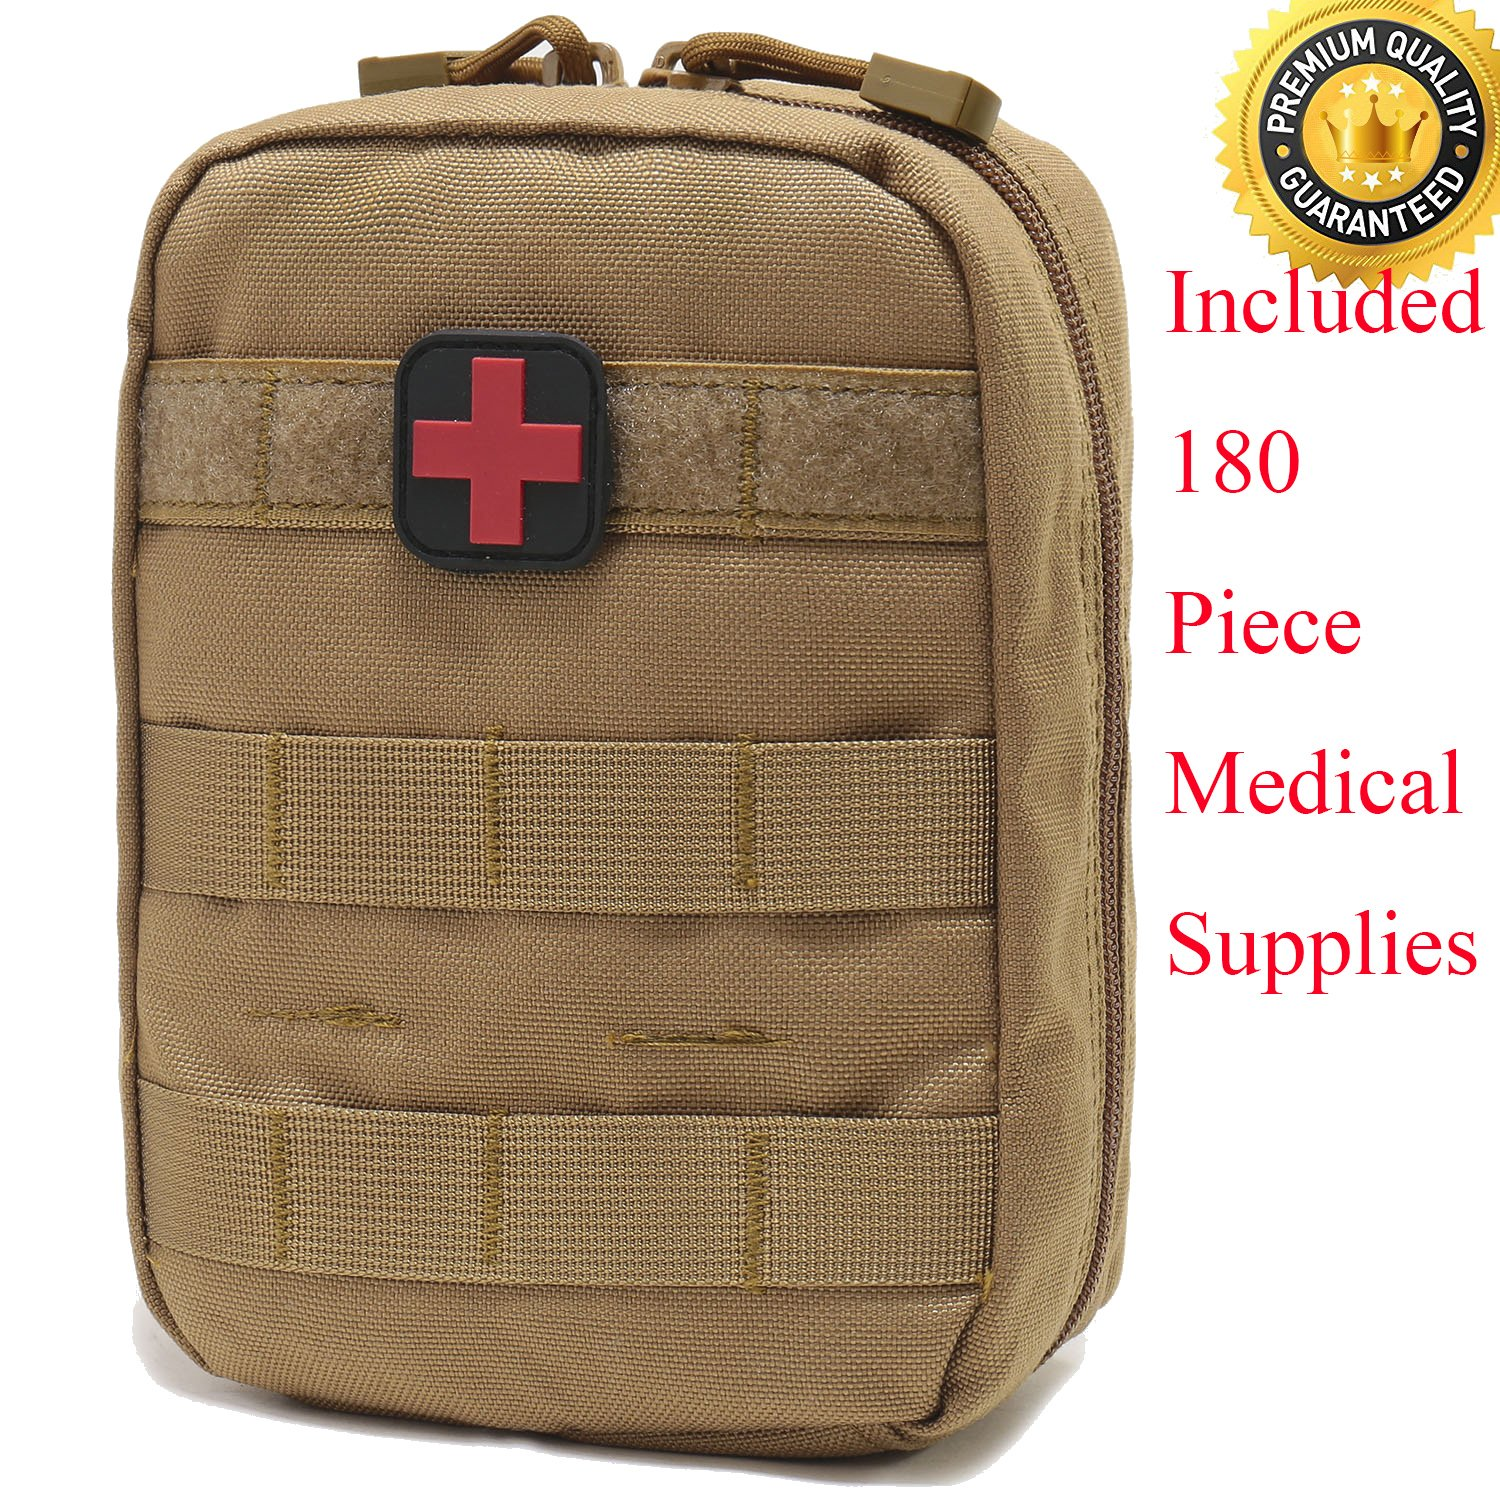 Carlebben EMT Pouch MOLLE Ifak Pouch Tactical MOLLE Medical First Aid Kit Utility Pouch (with Medical Supplies Tan)